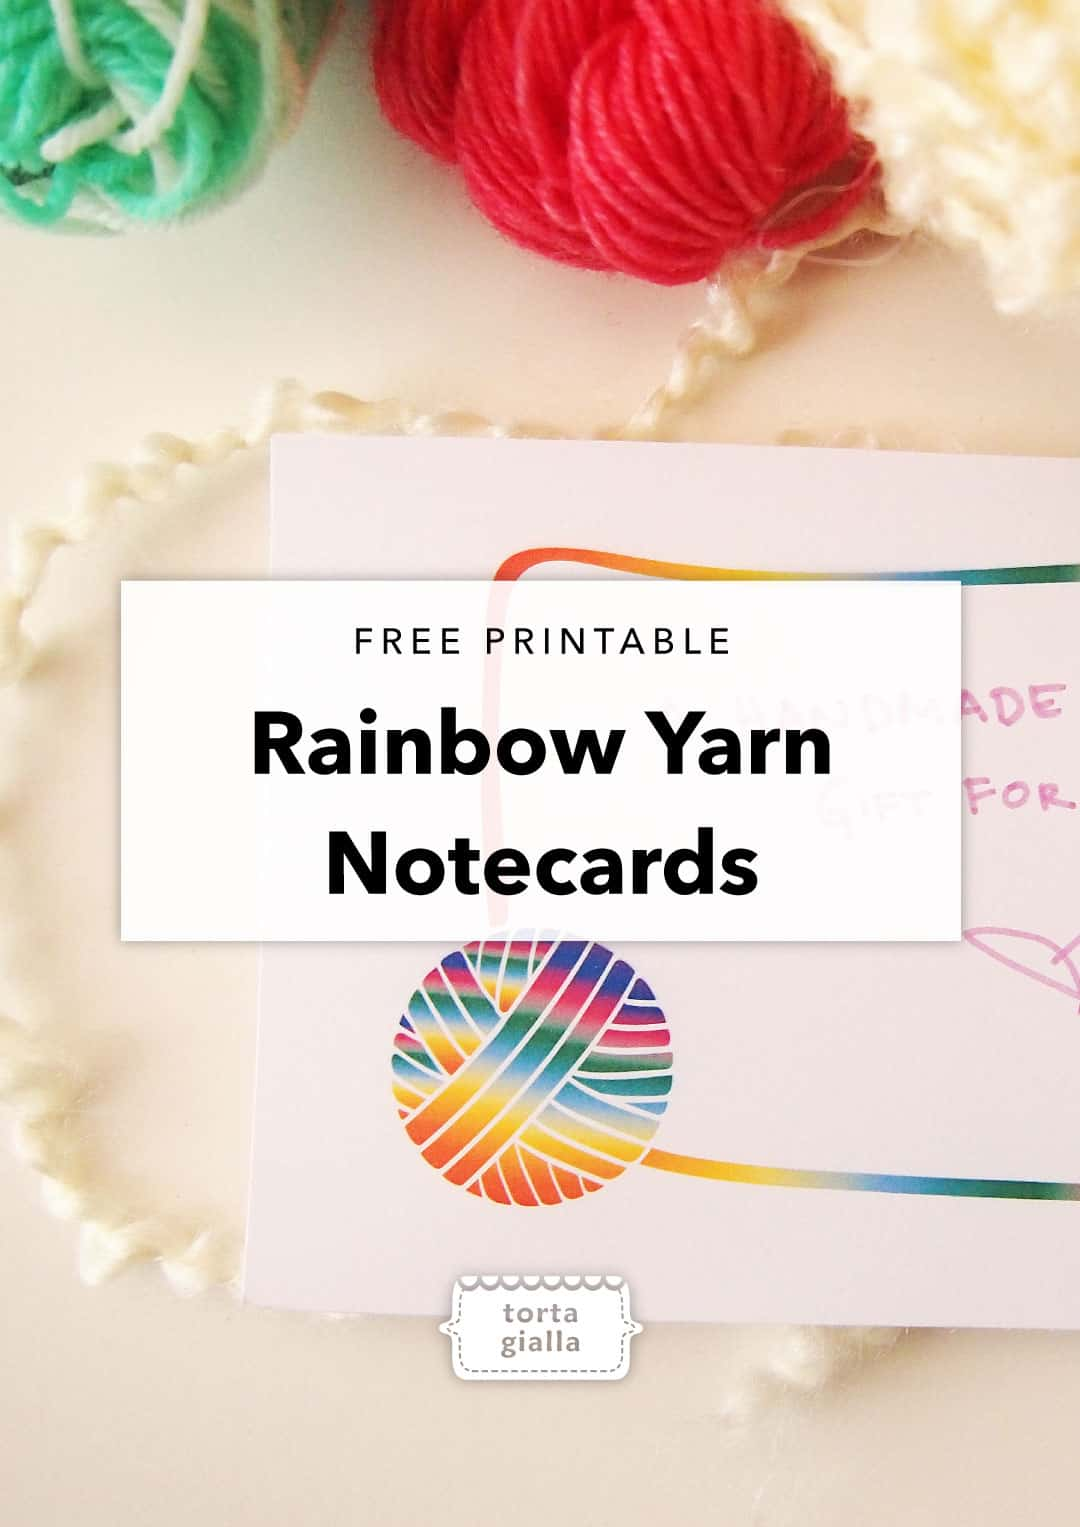 Rainbow Yarn Notecards - Free Printable